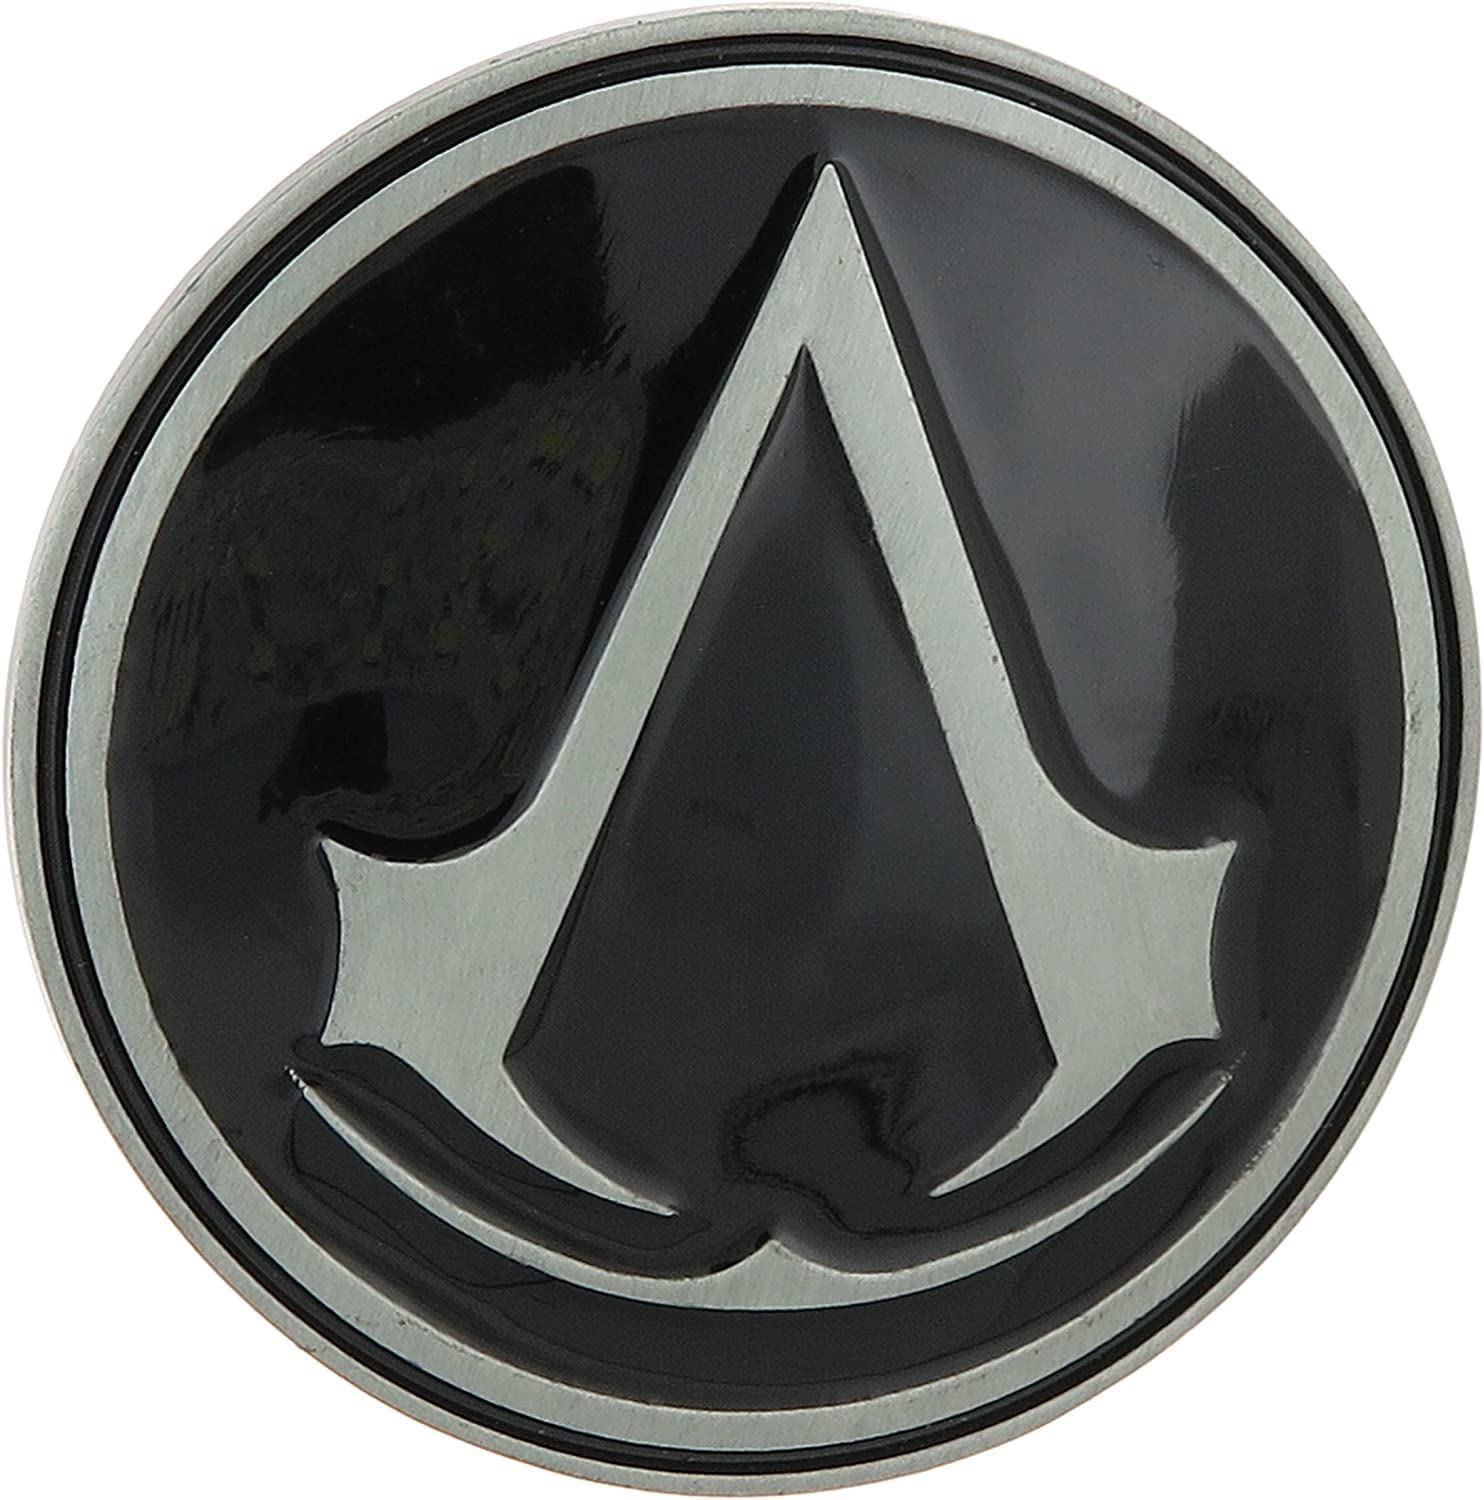 NEW ASSASSINs CREED THE EZIO BELT BUCKLE FULL METAL GAMING BUCKLE